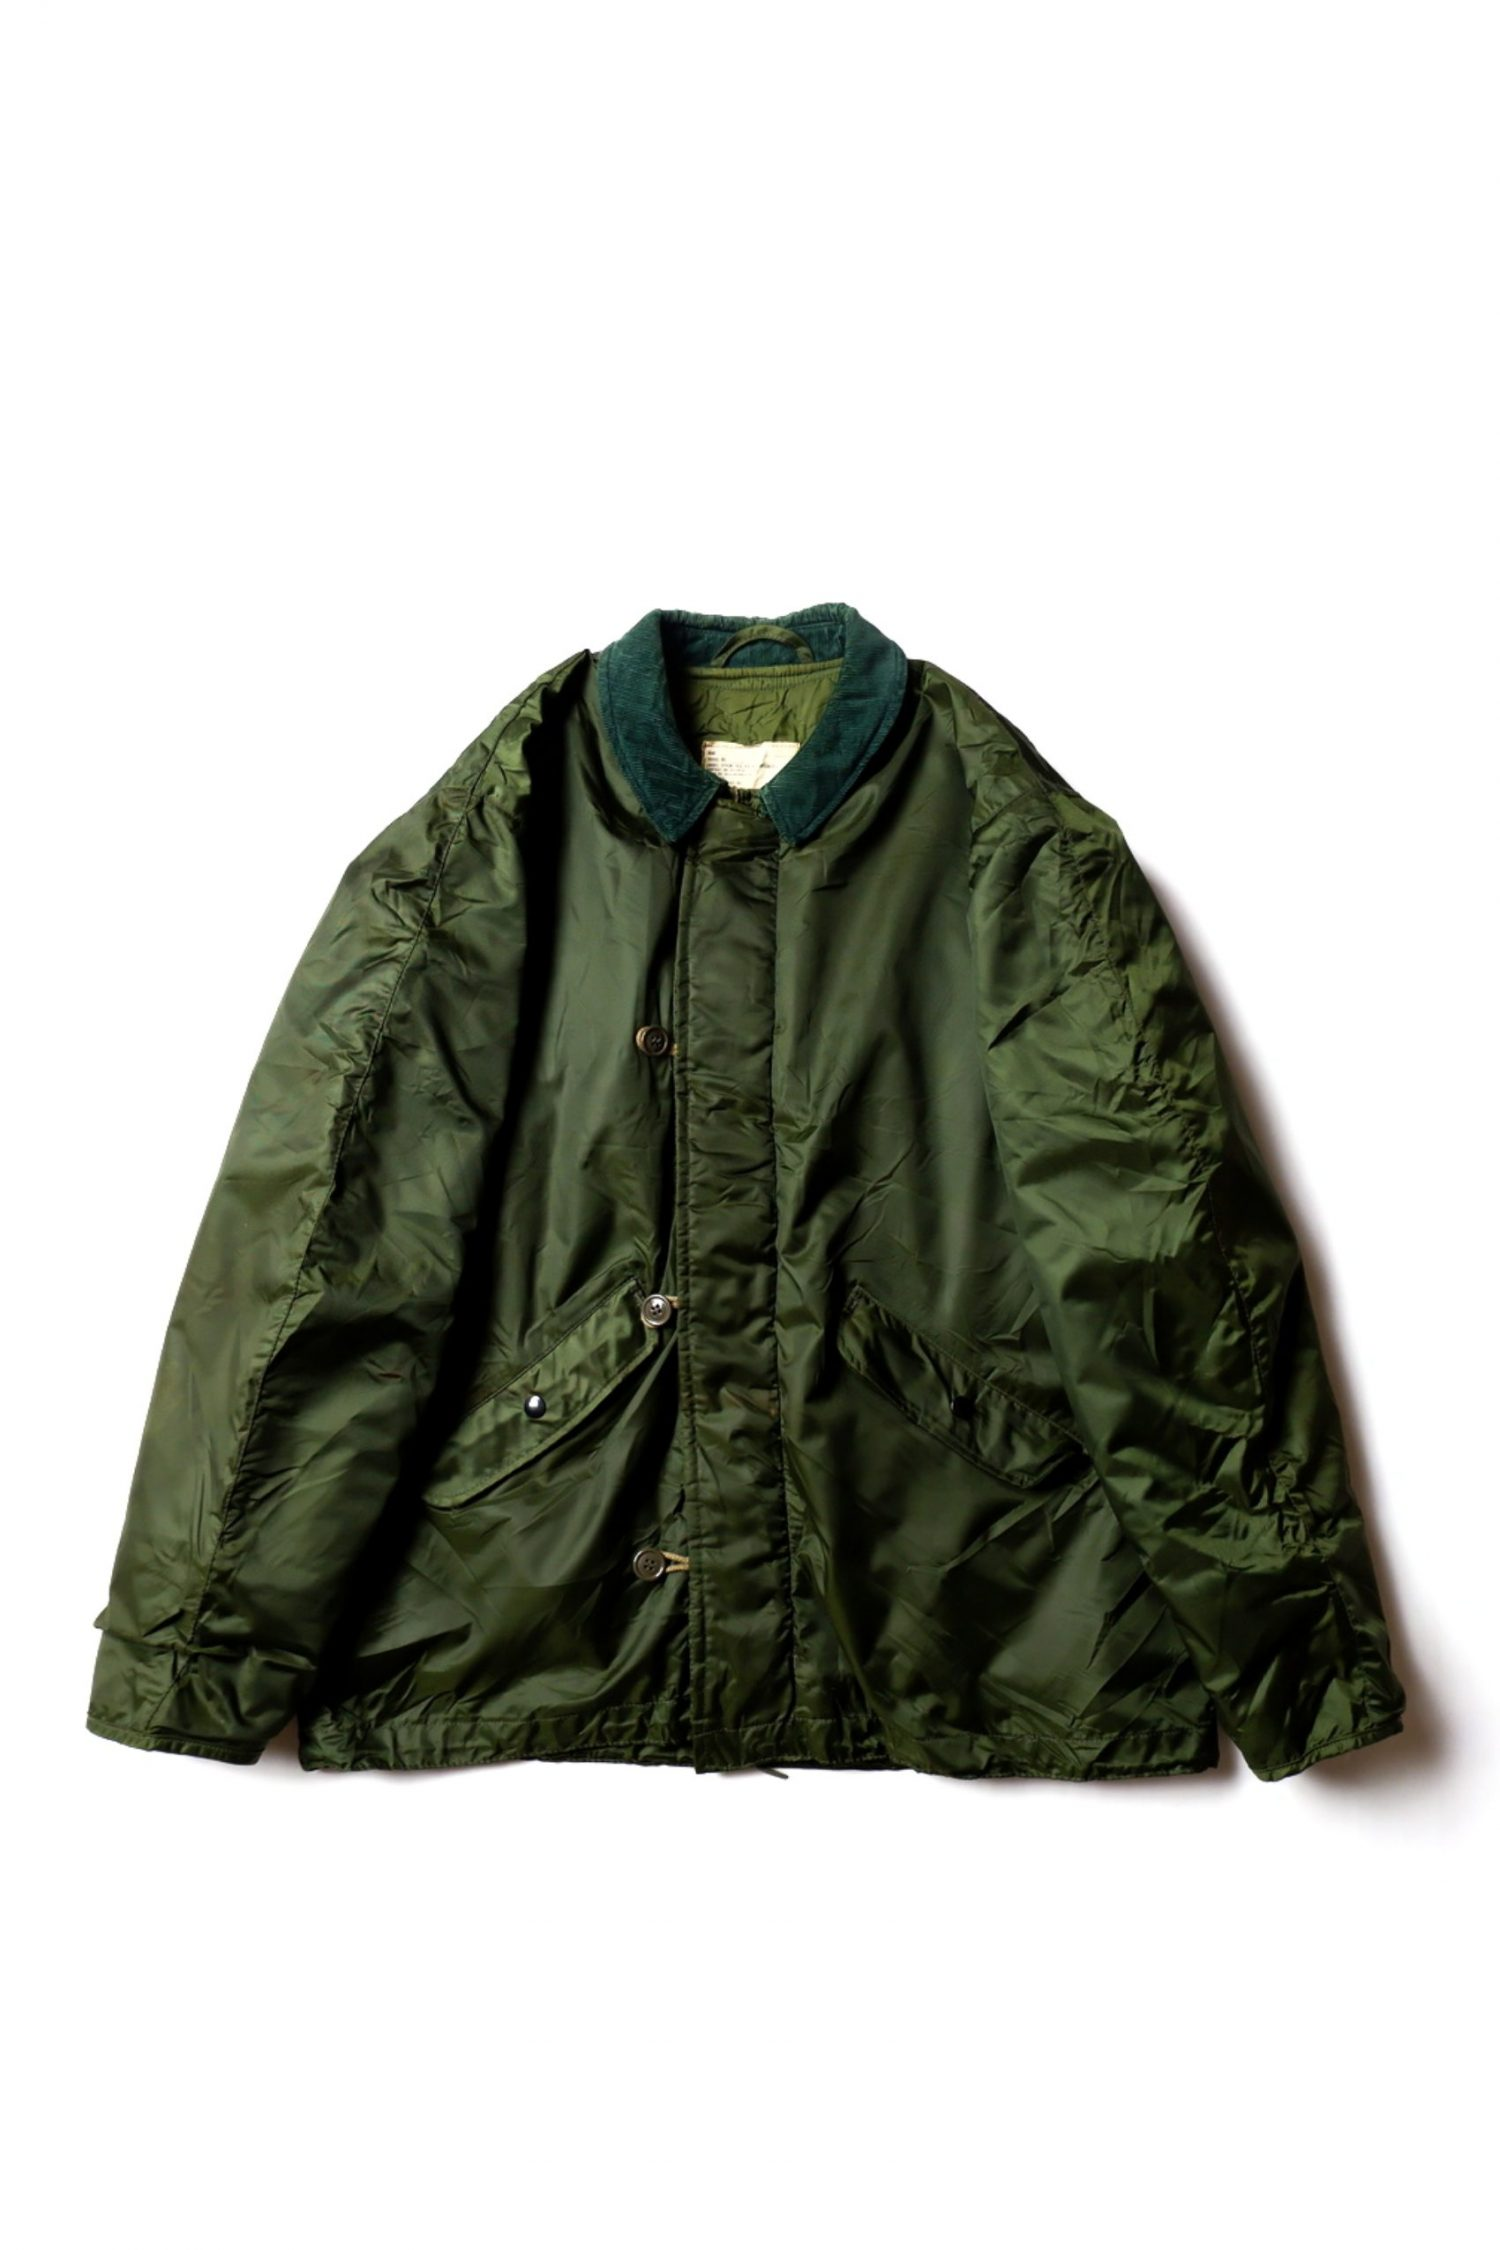 1980 Vintage Military Extreme Weather Impermable Jacket